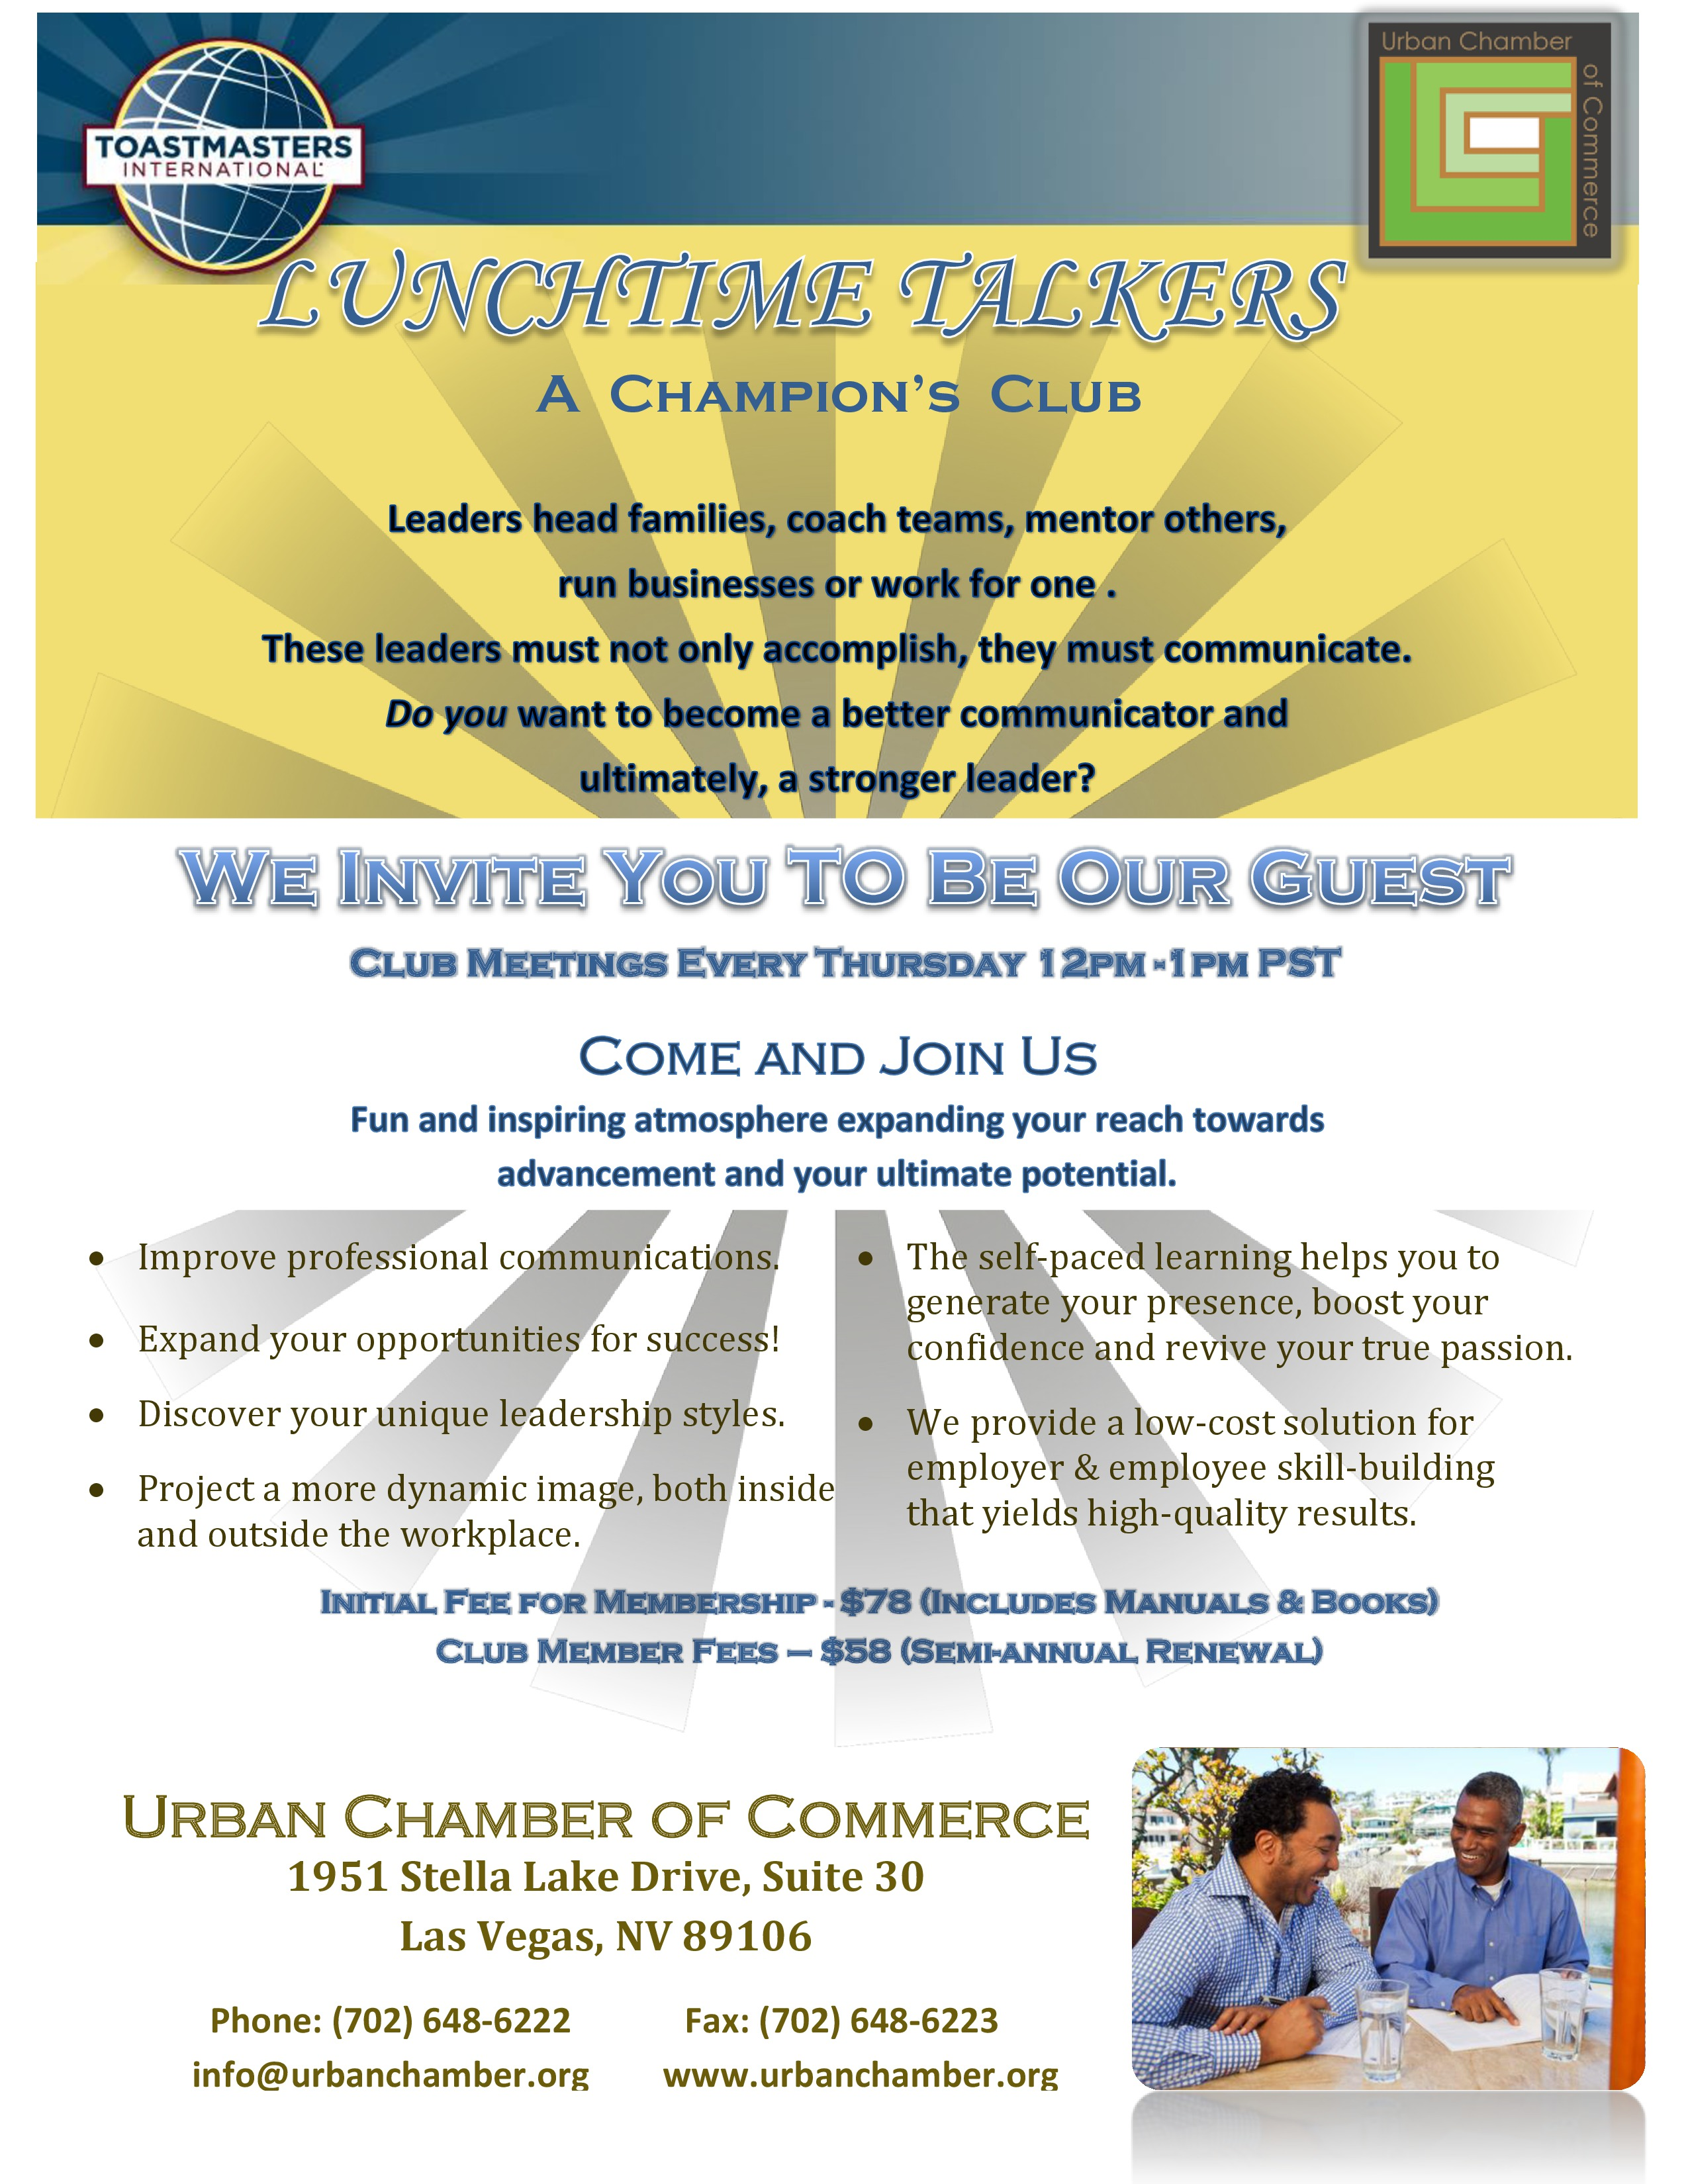 toastmasters lunchtime talkers apr 27 2017 urban chamber of toastmasters lunchtime talkers apr 27 2017 urban chamber of commerce nv